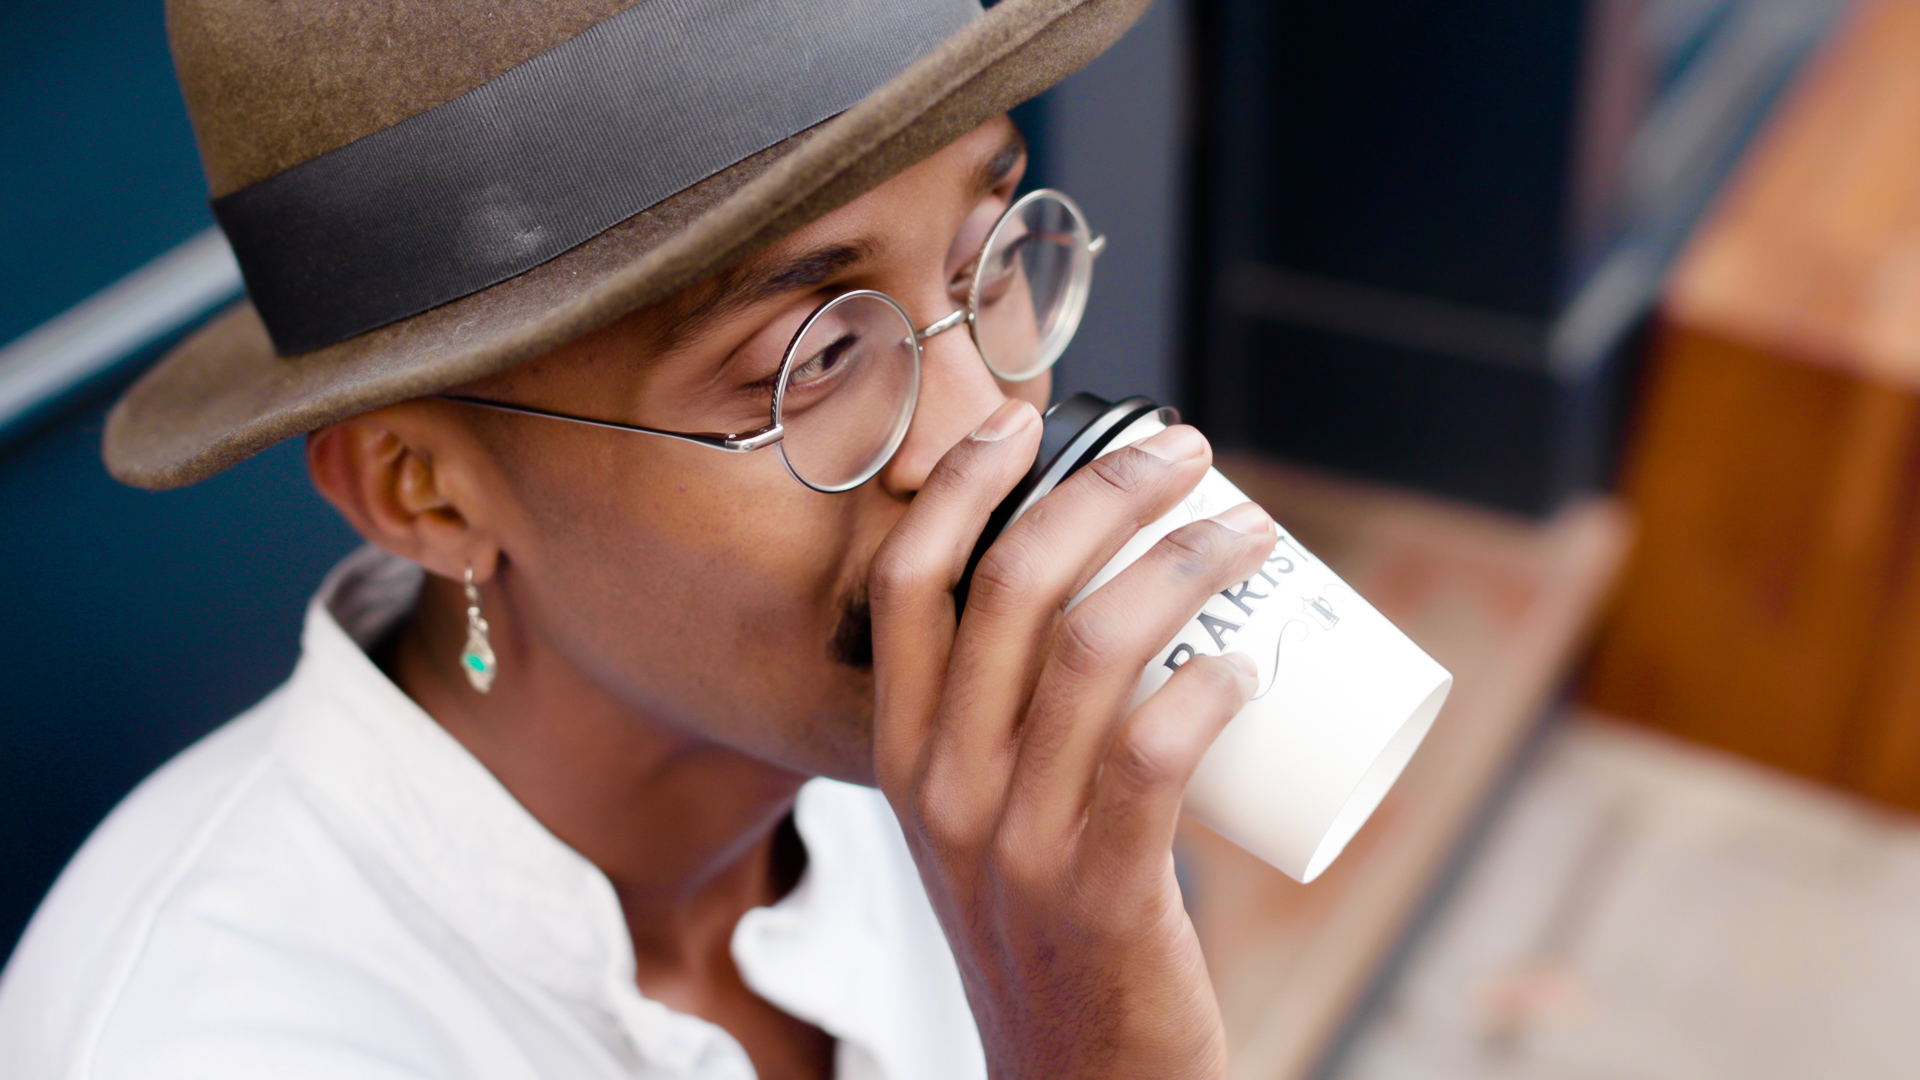 Gentlemen Barista - close up of person drinking coffee